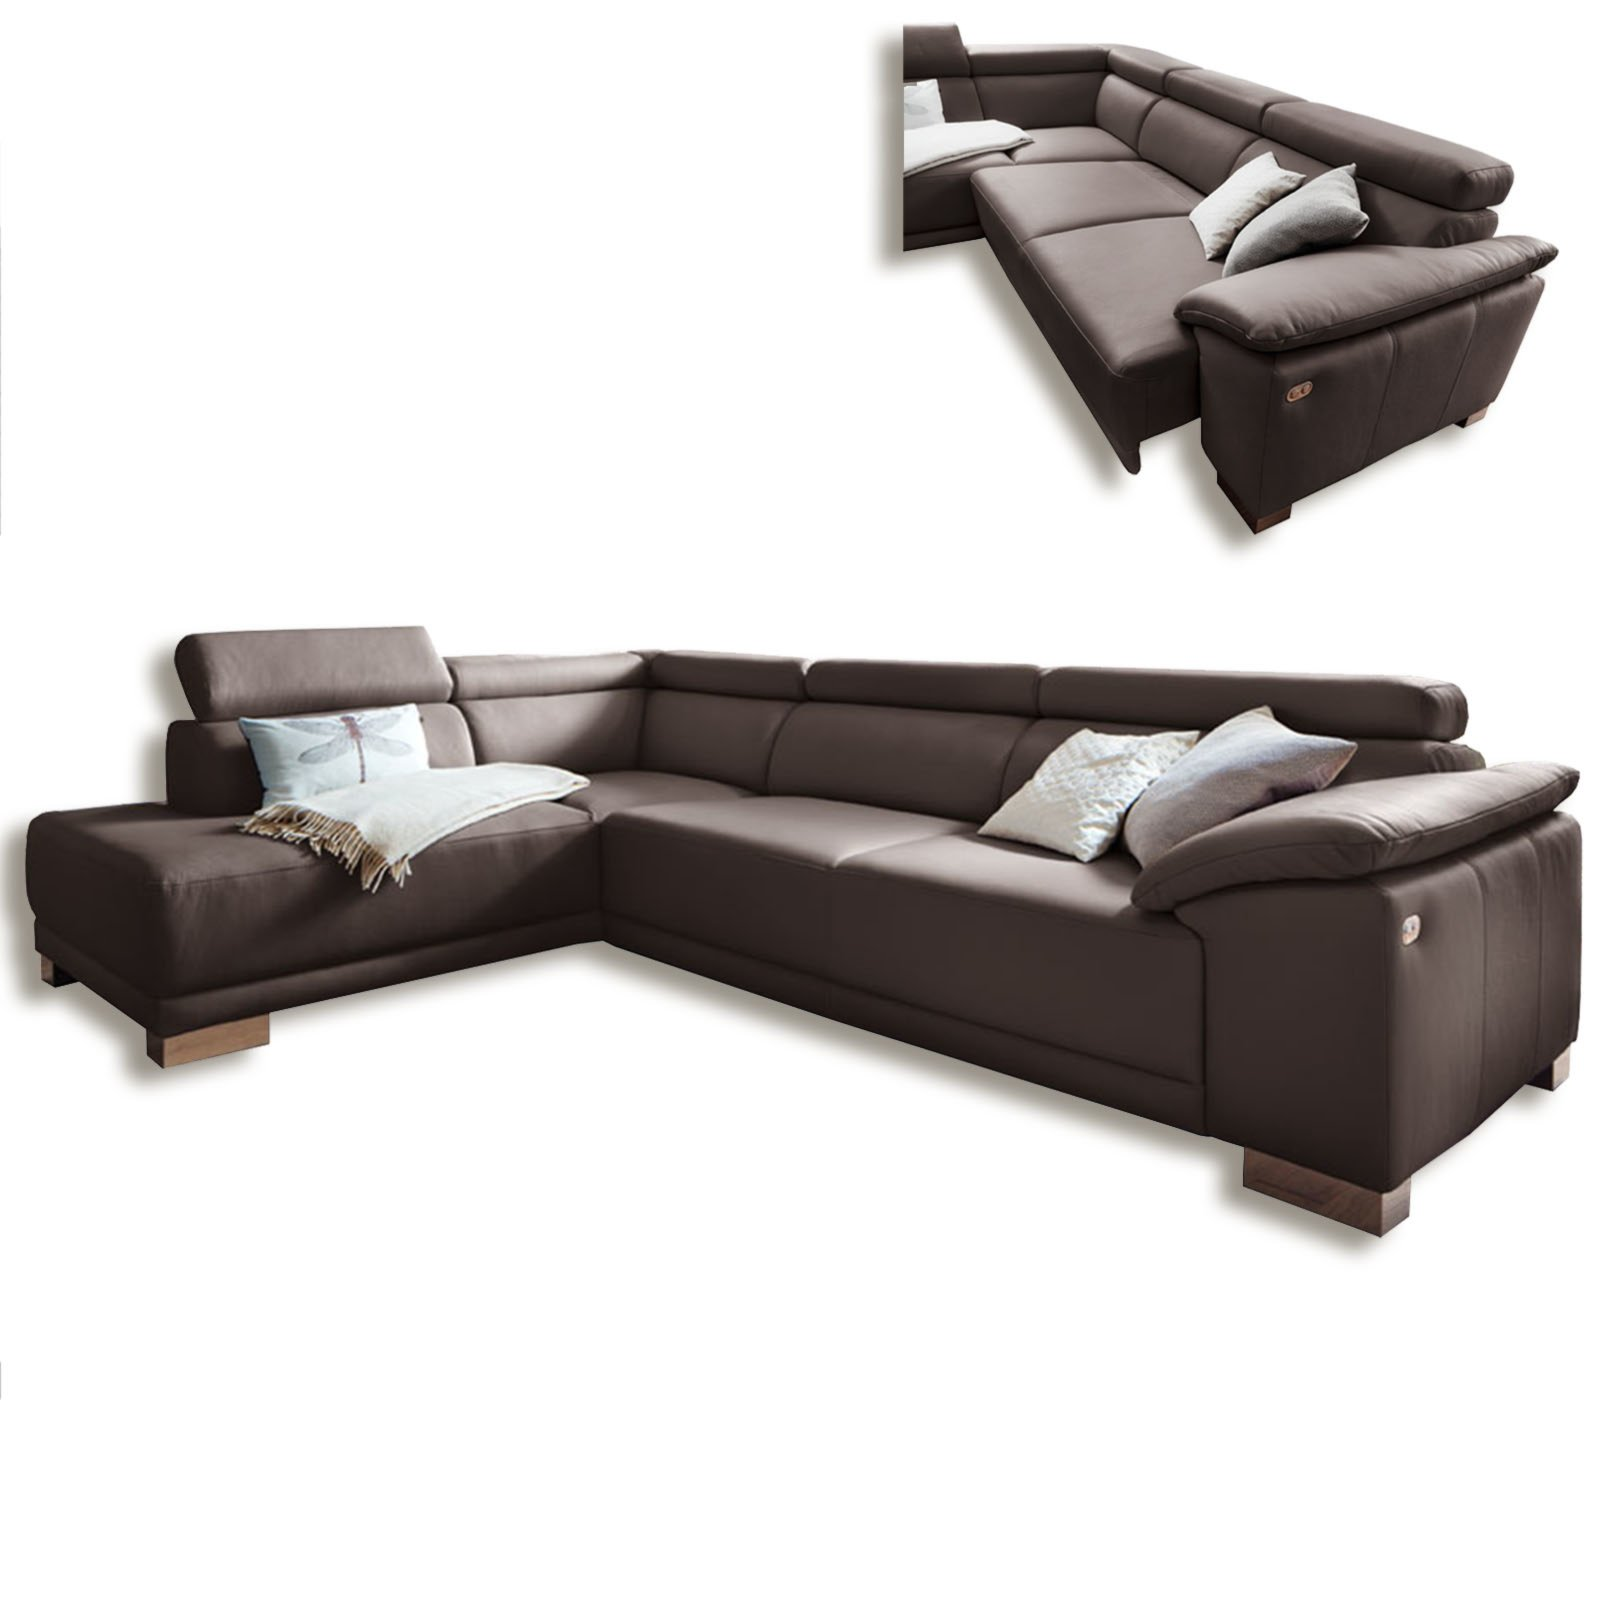 ledercouch braun great braune ledercouch with ledercouch. Black Bedroom Furniture Sets. Home Design Ideas